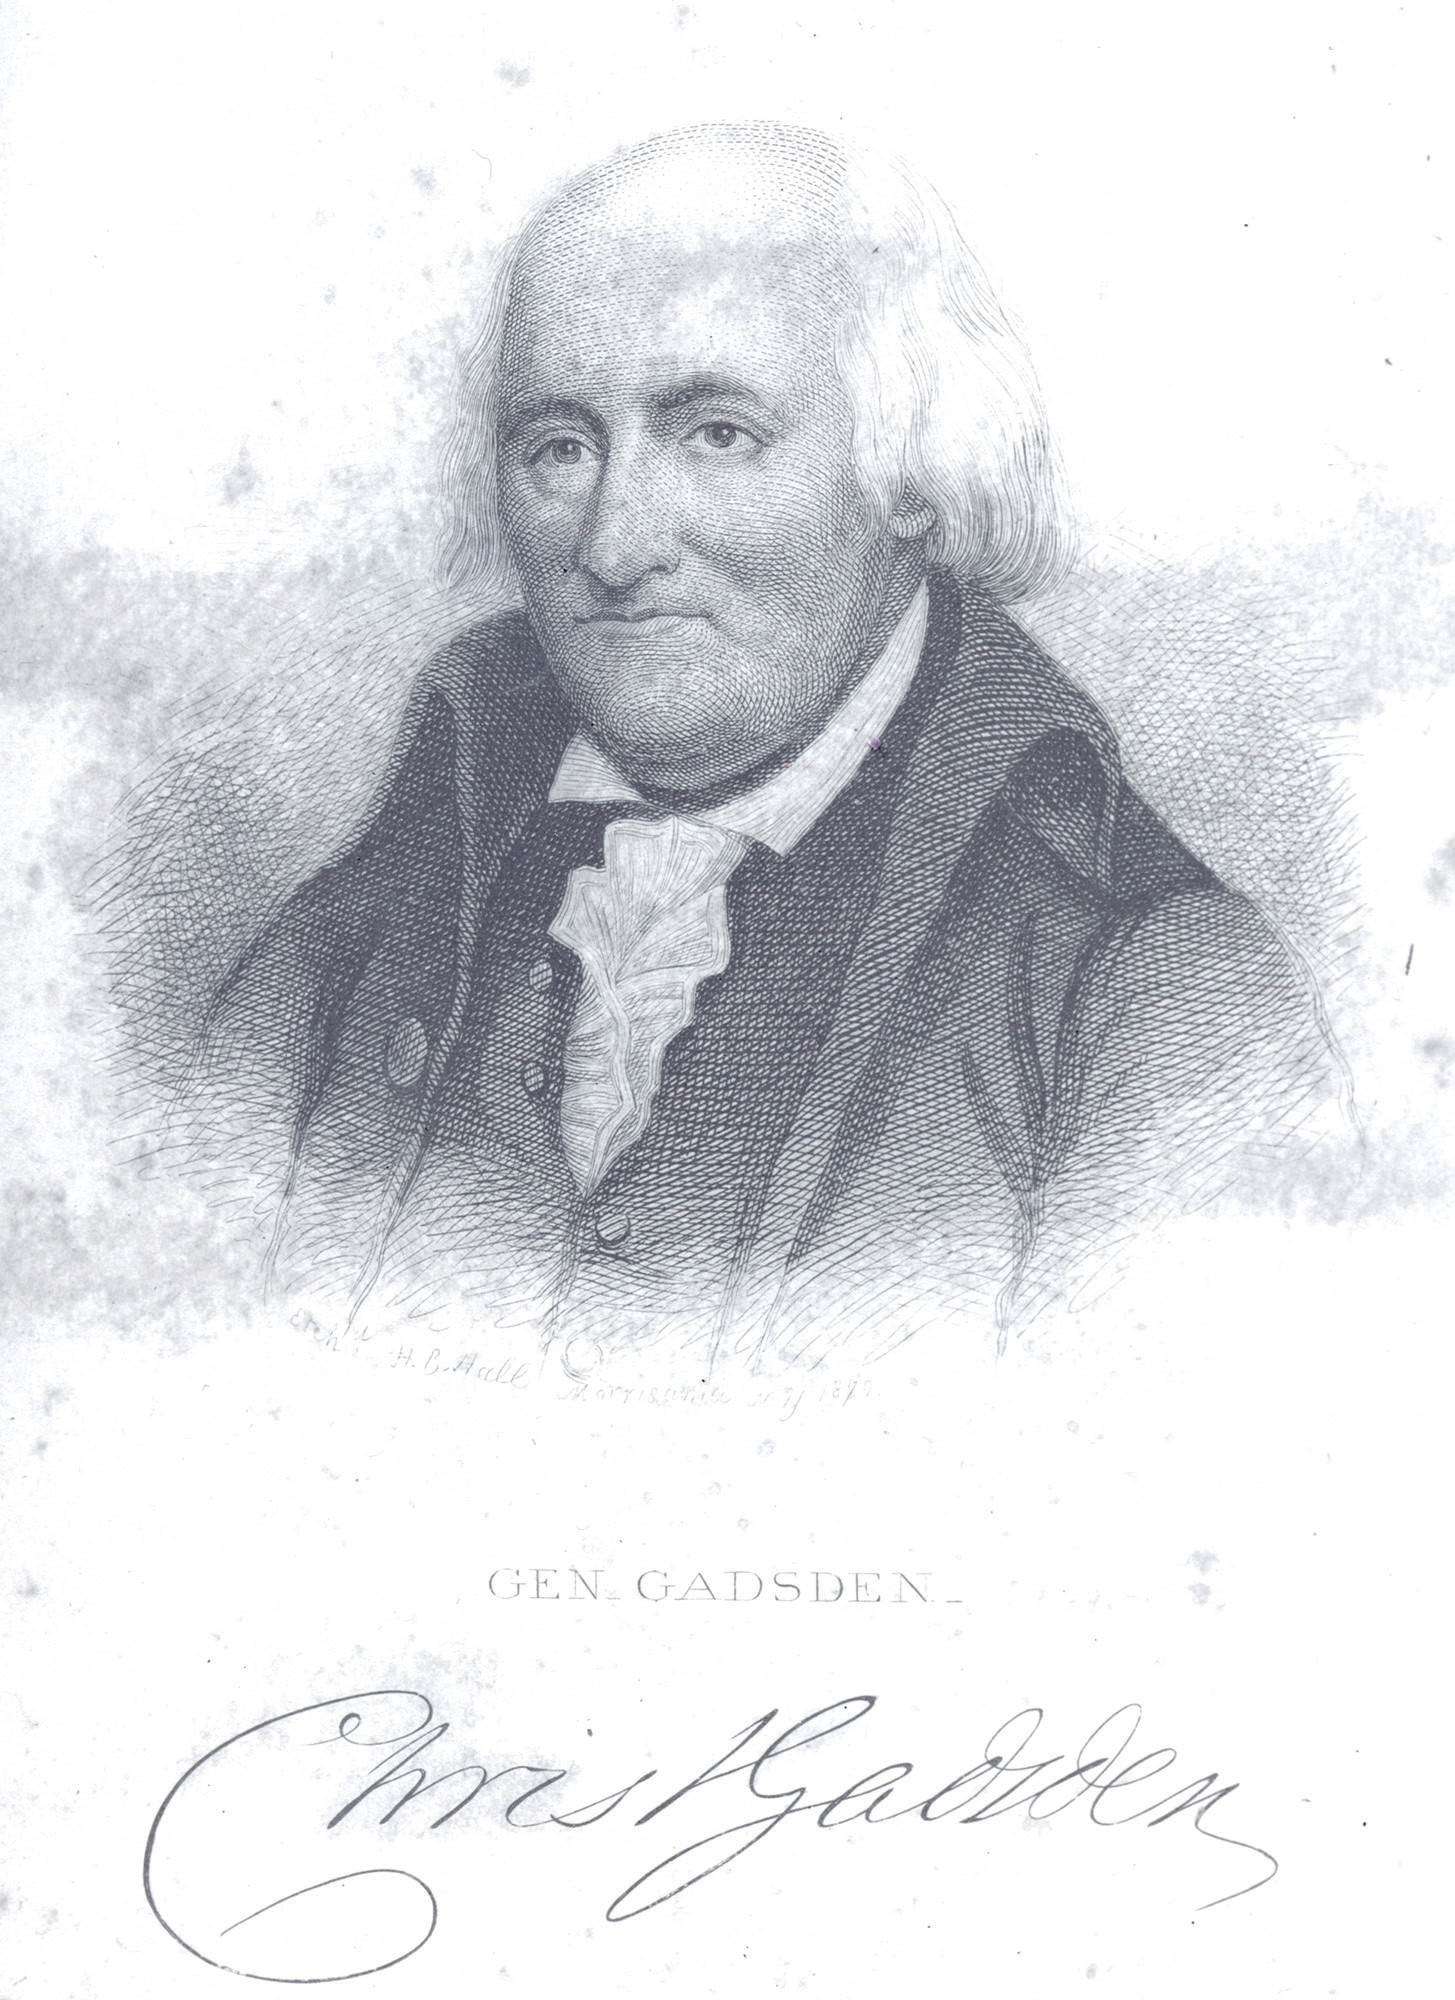 PHOTO PROVIDEDChristopher Gadsden was denied the oath of office by Governor Boone in 1762. He would later serve in the Stamp Act Congress, the First Continental Congress, and, eventually, as a brigadier general in the Continental Army.